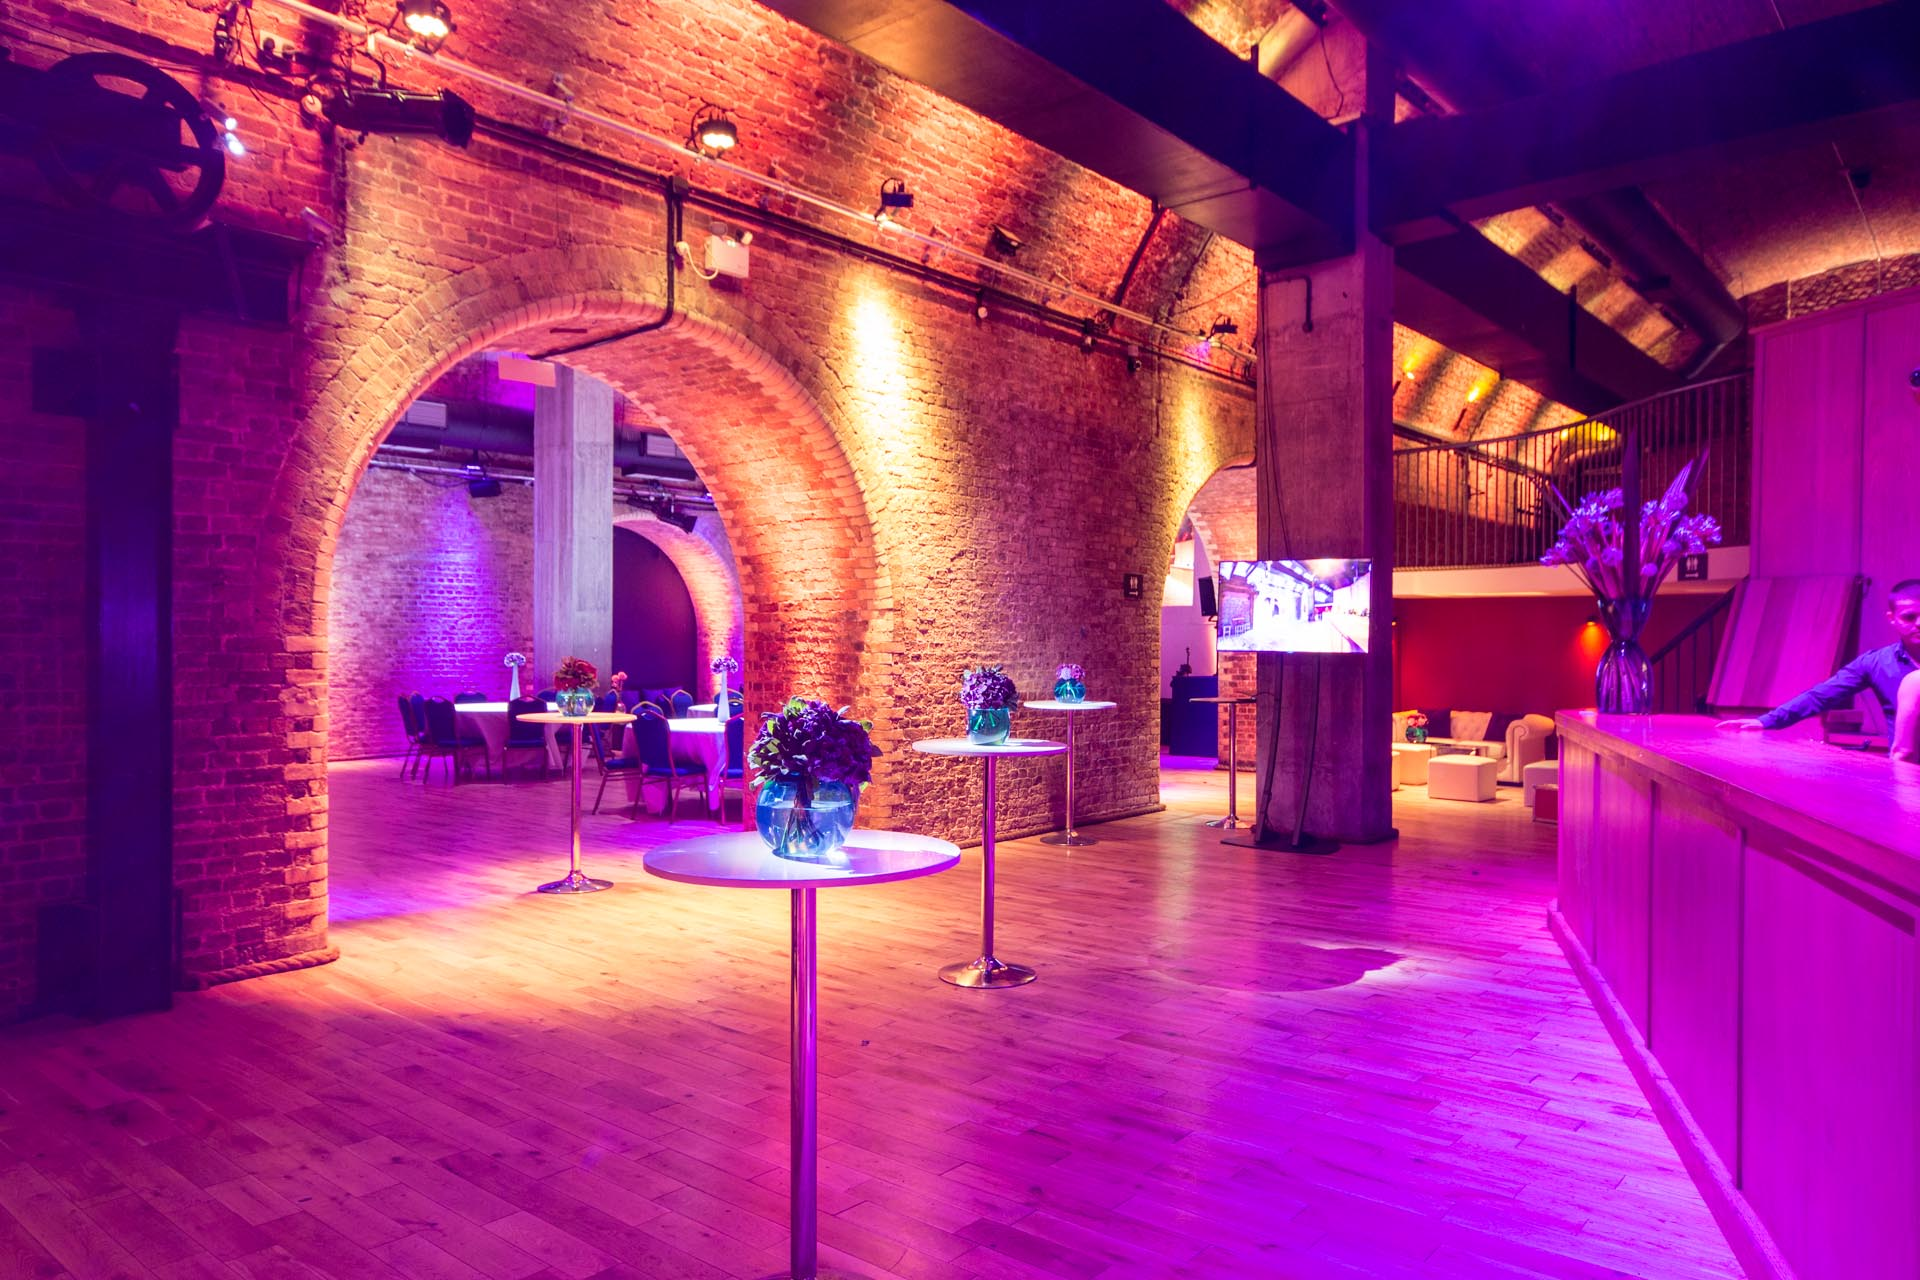 Steel Yard London Venue Hire EC3, archs lit up with purple uplighters